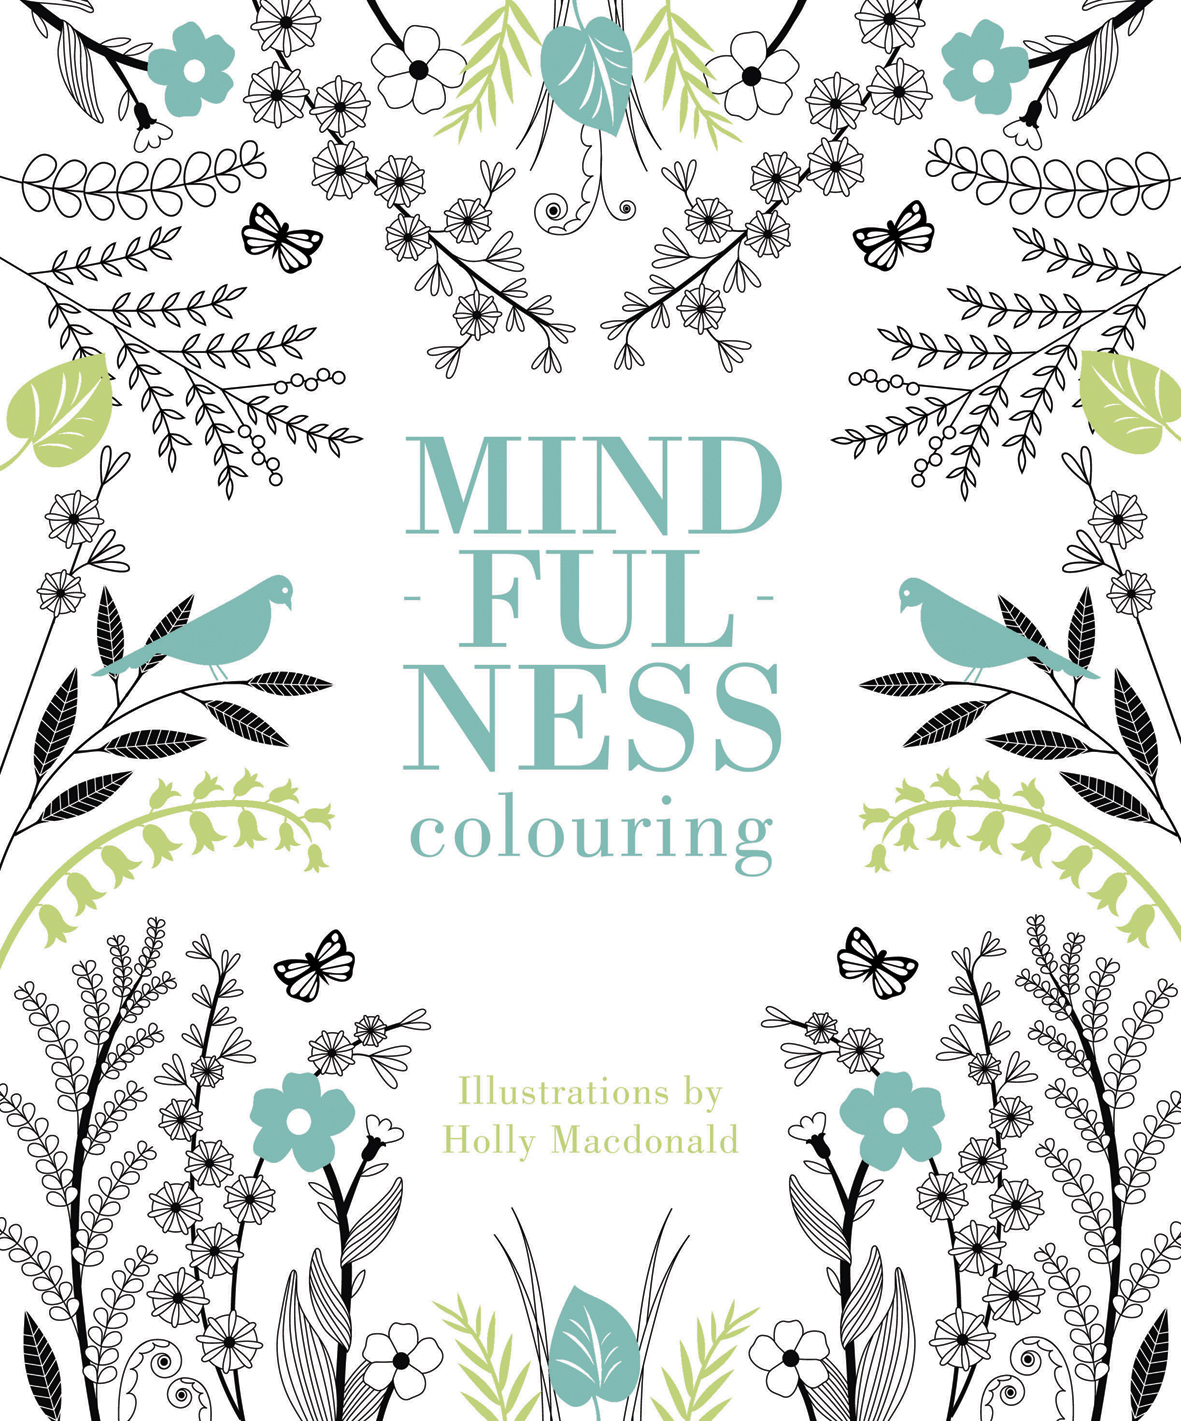 Little book of coloring for mindfulness - Download Jacket Image